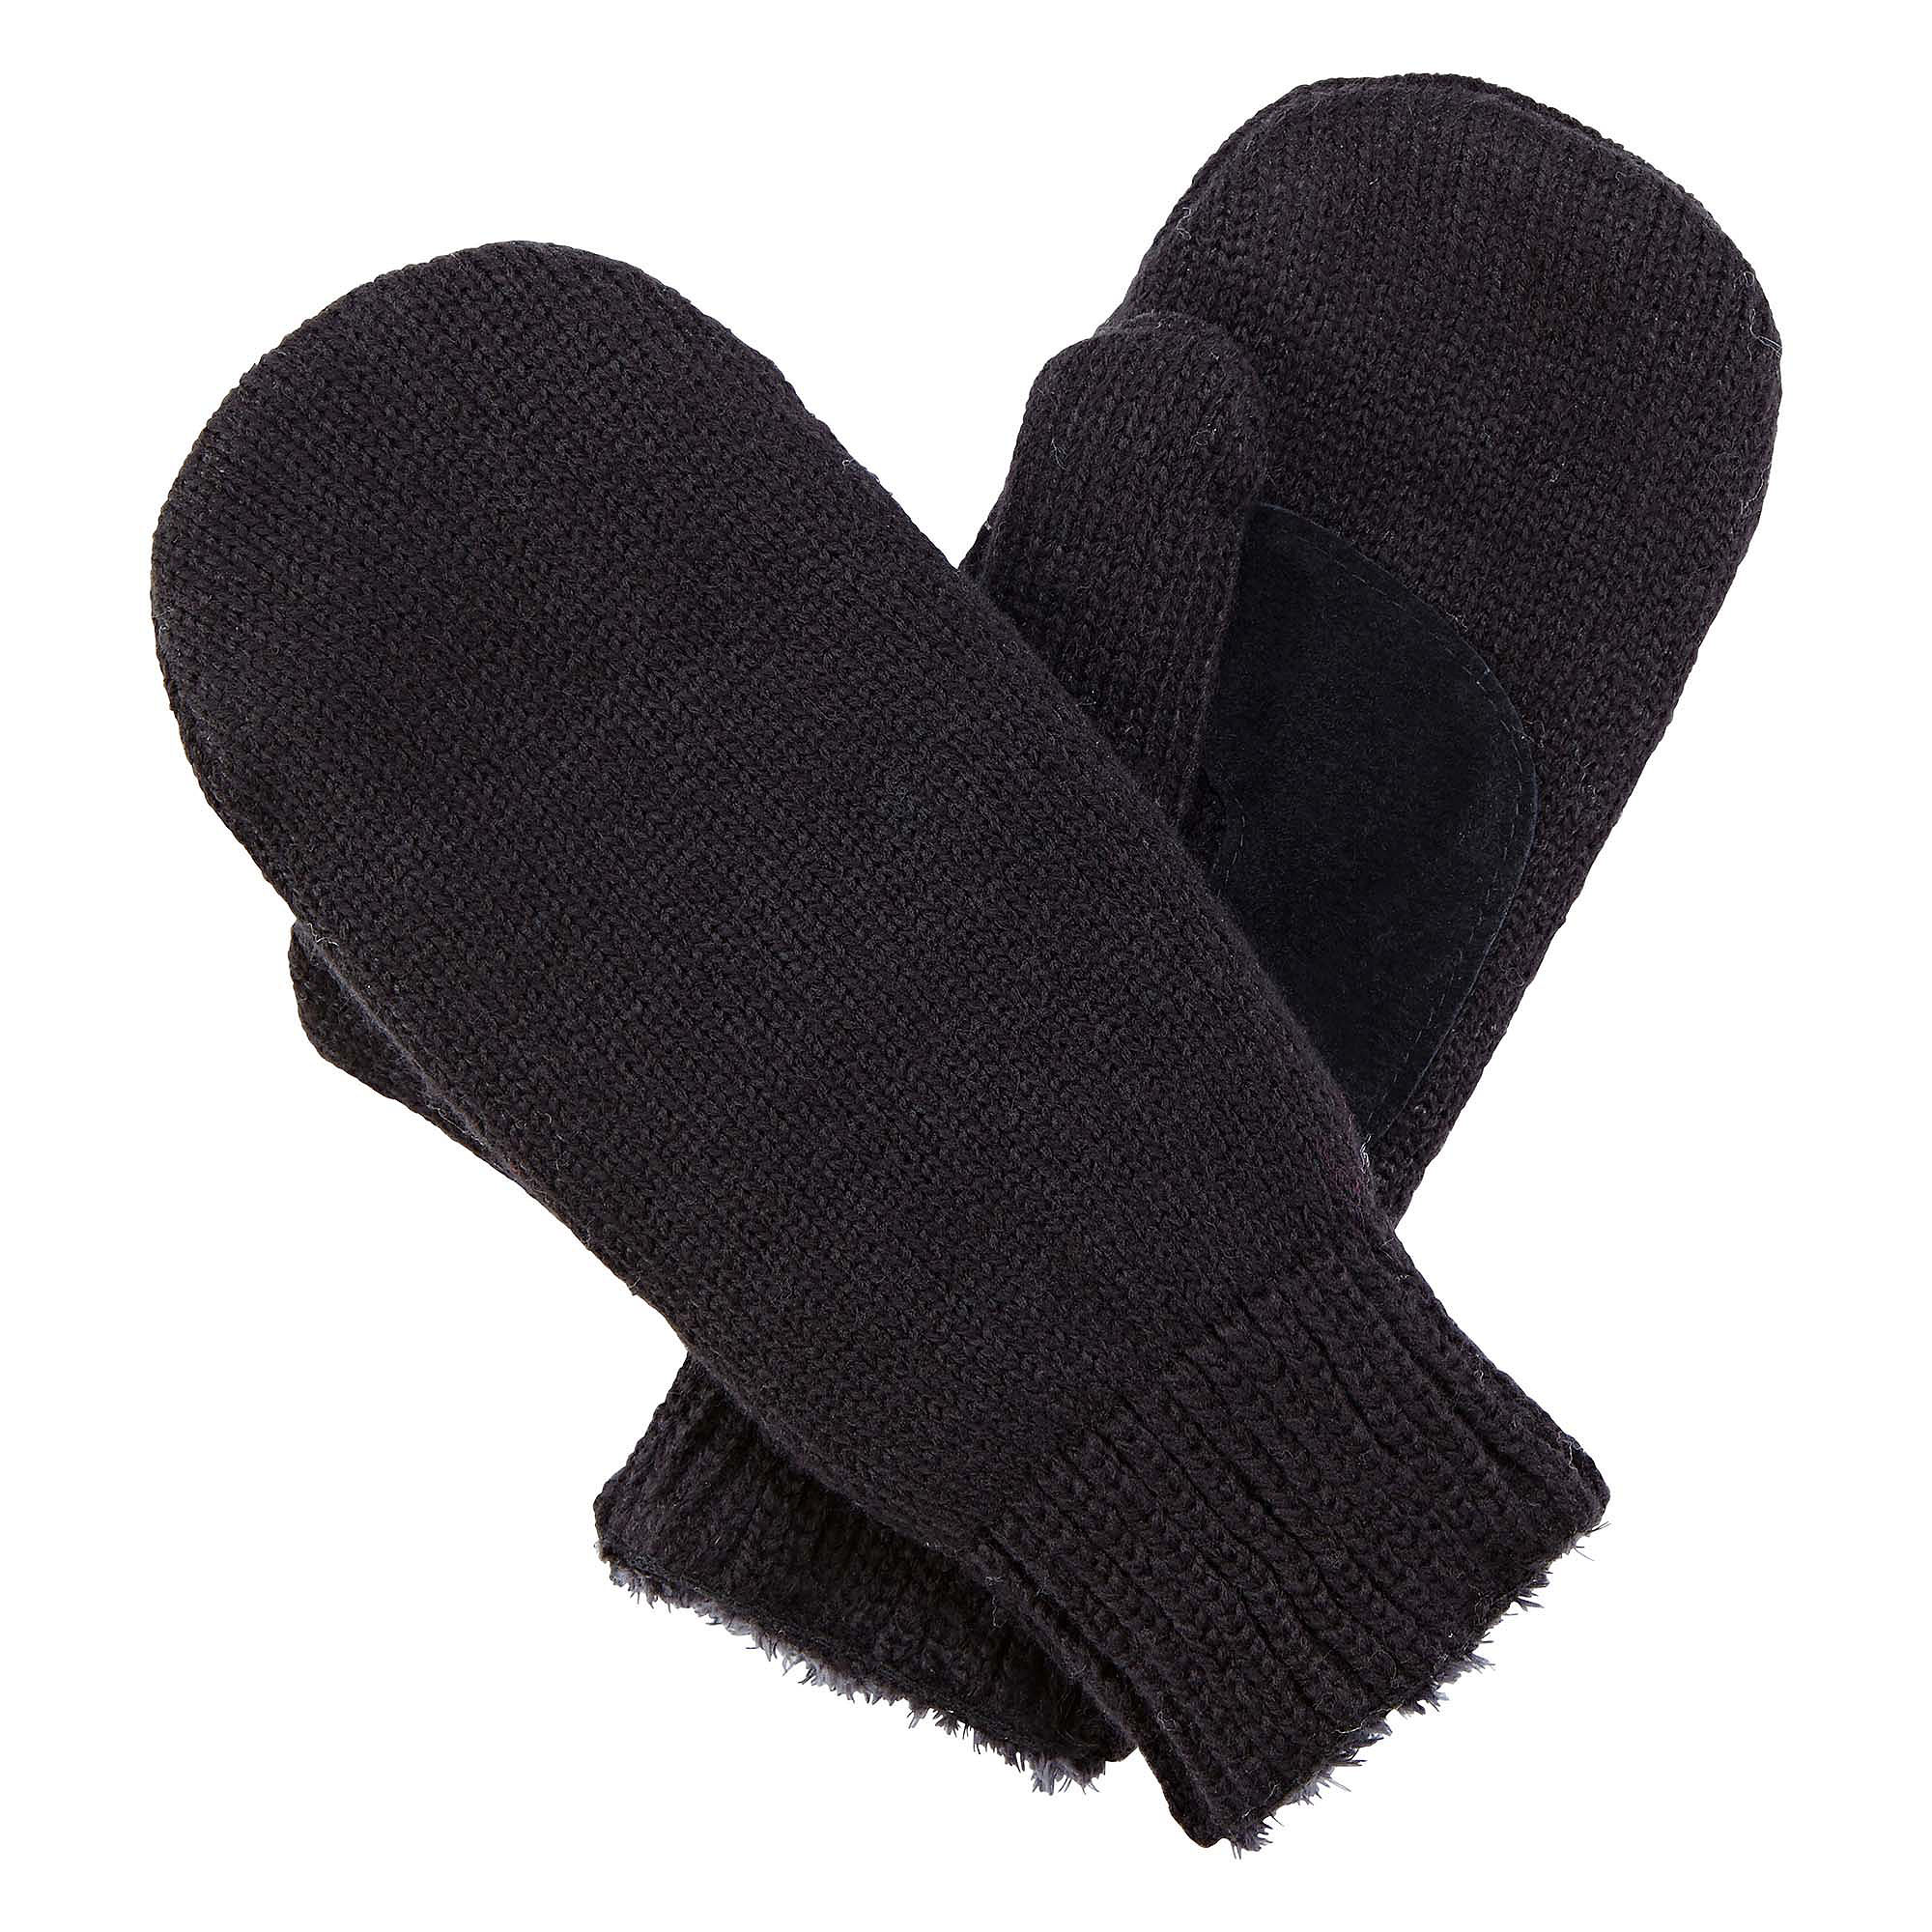 Isotoner Knit Mittens with Mircroluxe Lining